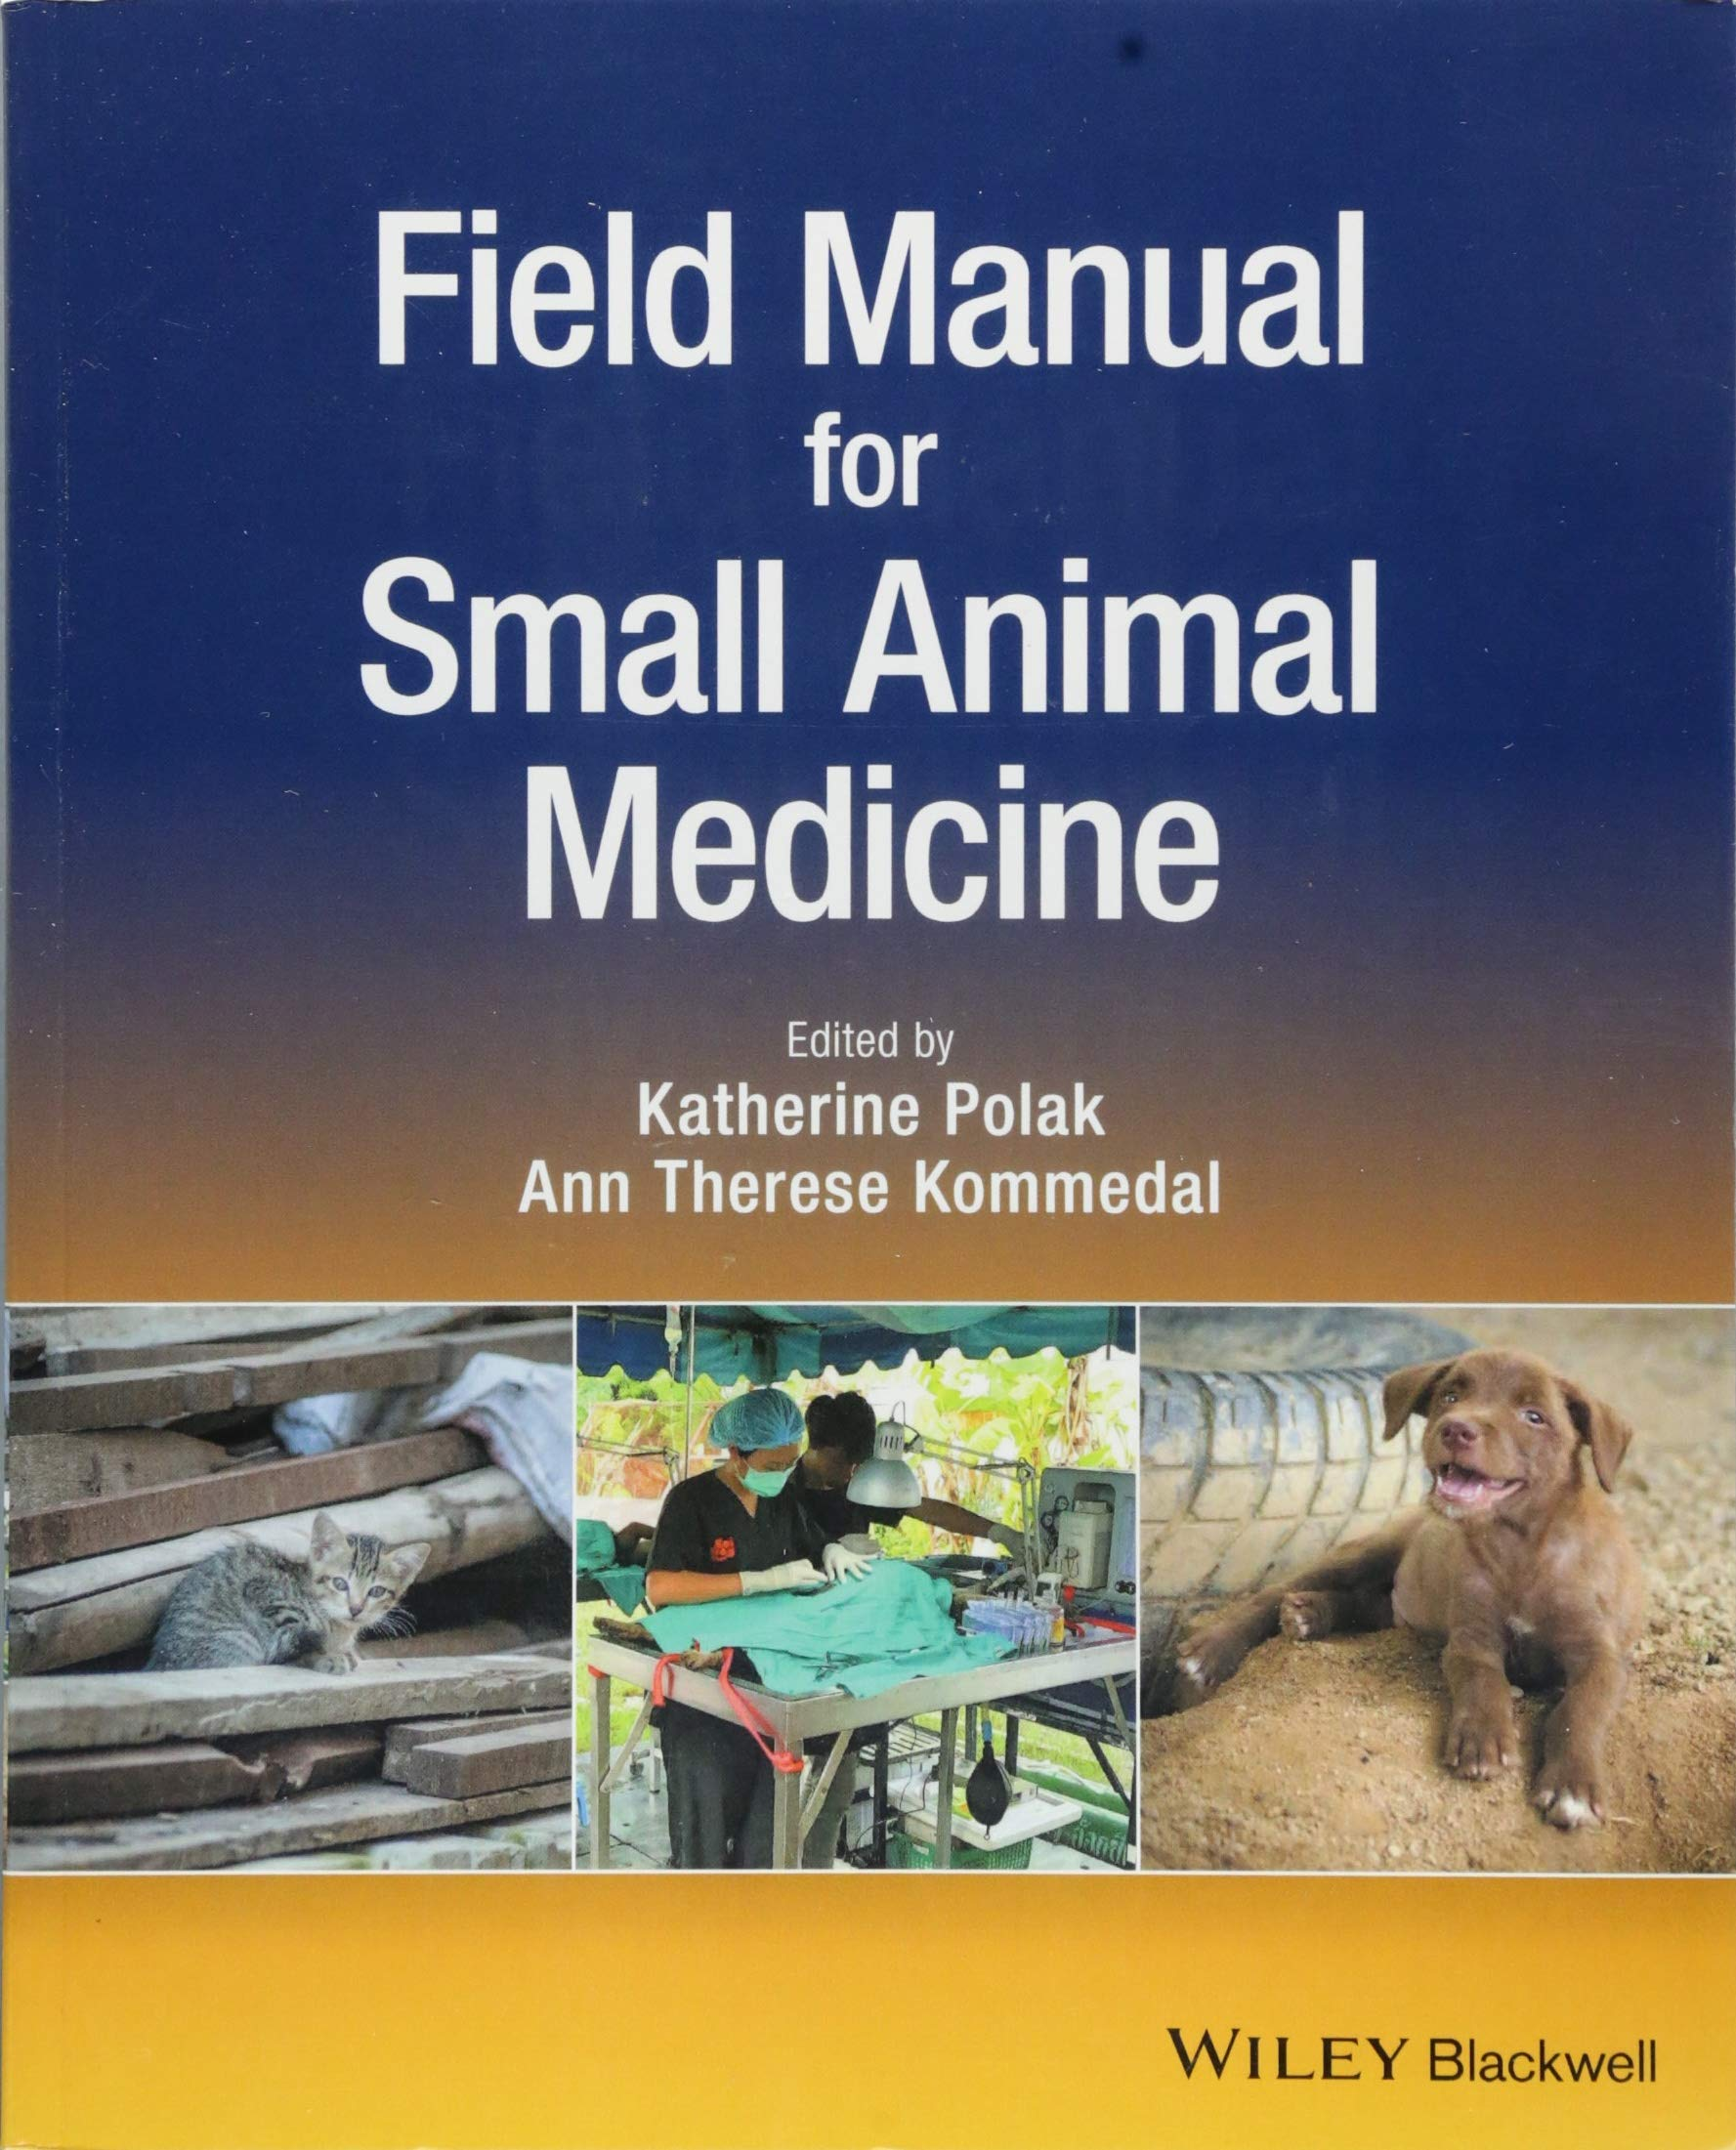 Field Manual for Small Animal Medicine by Wiley-Blackwell